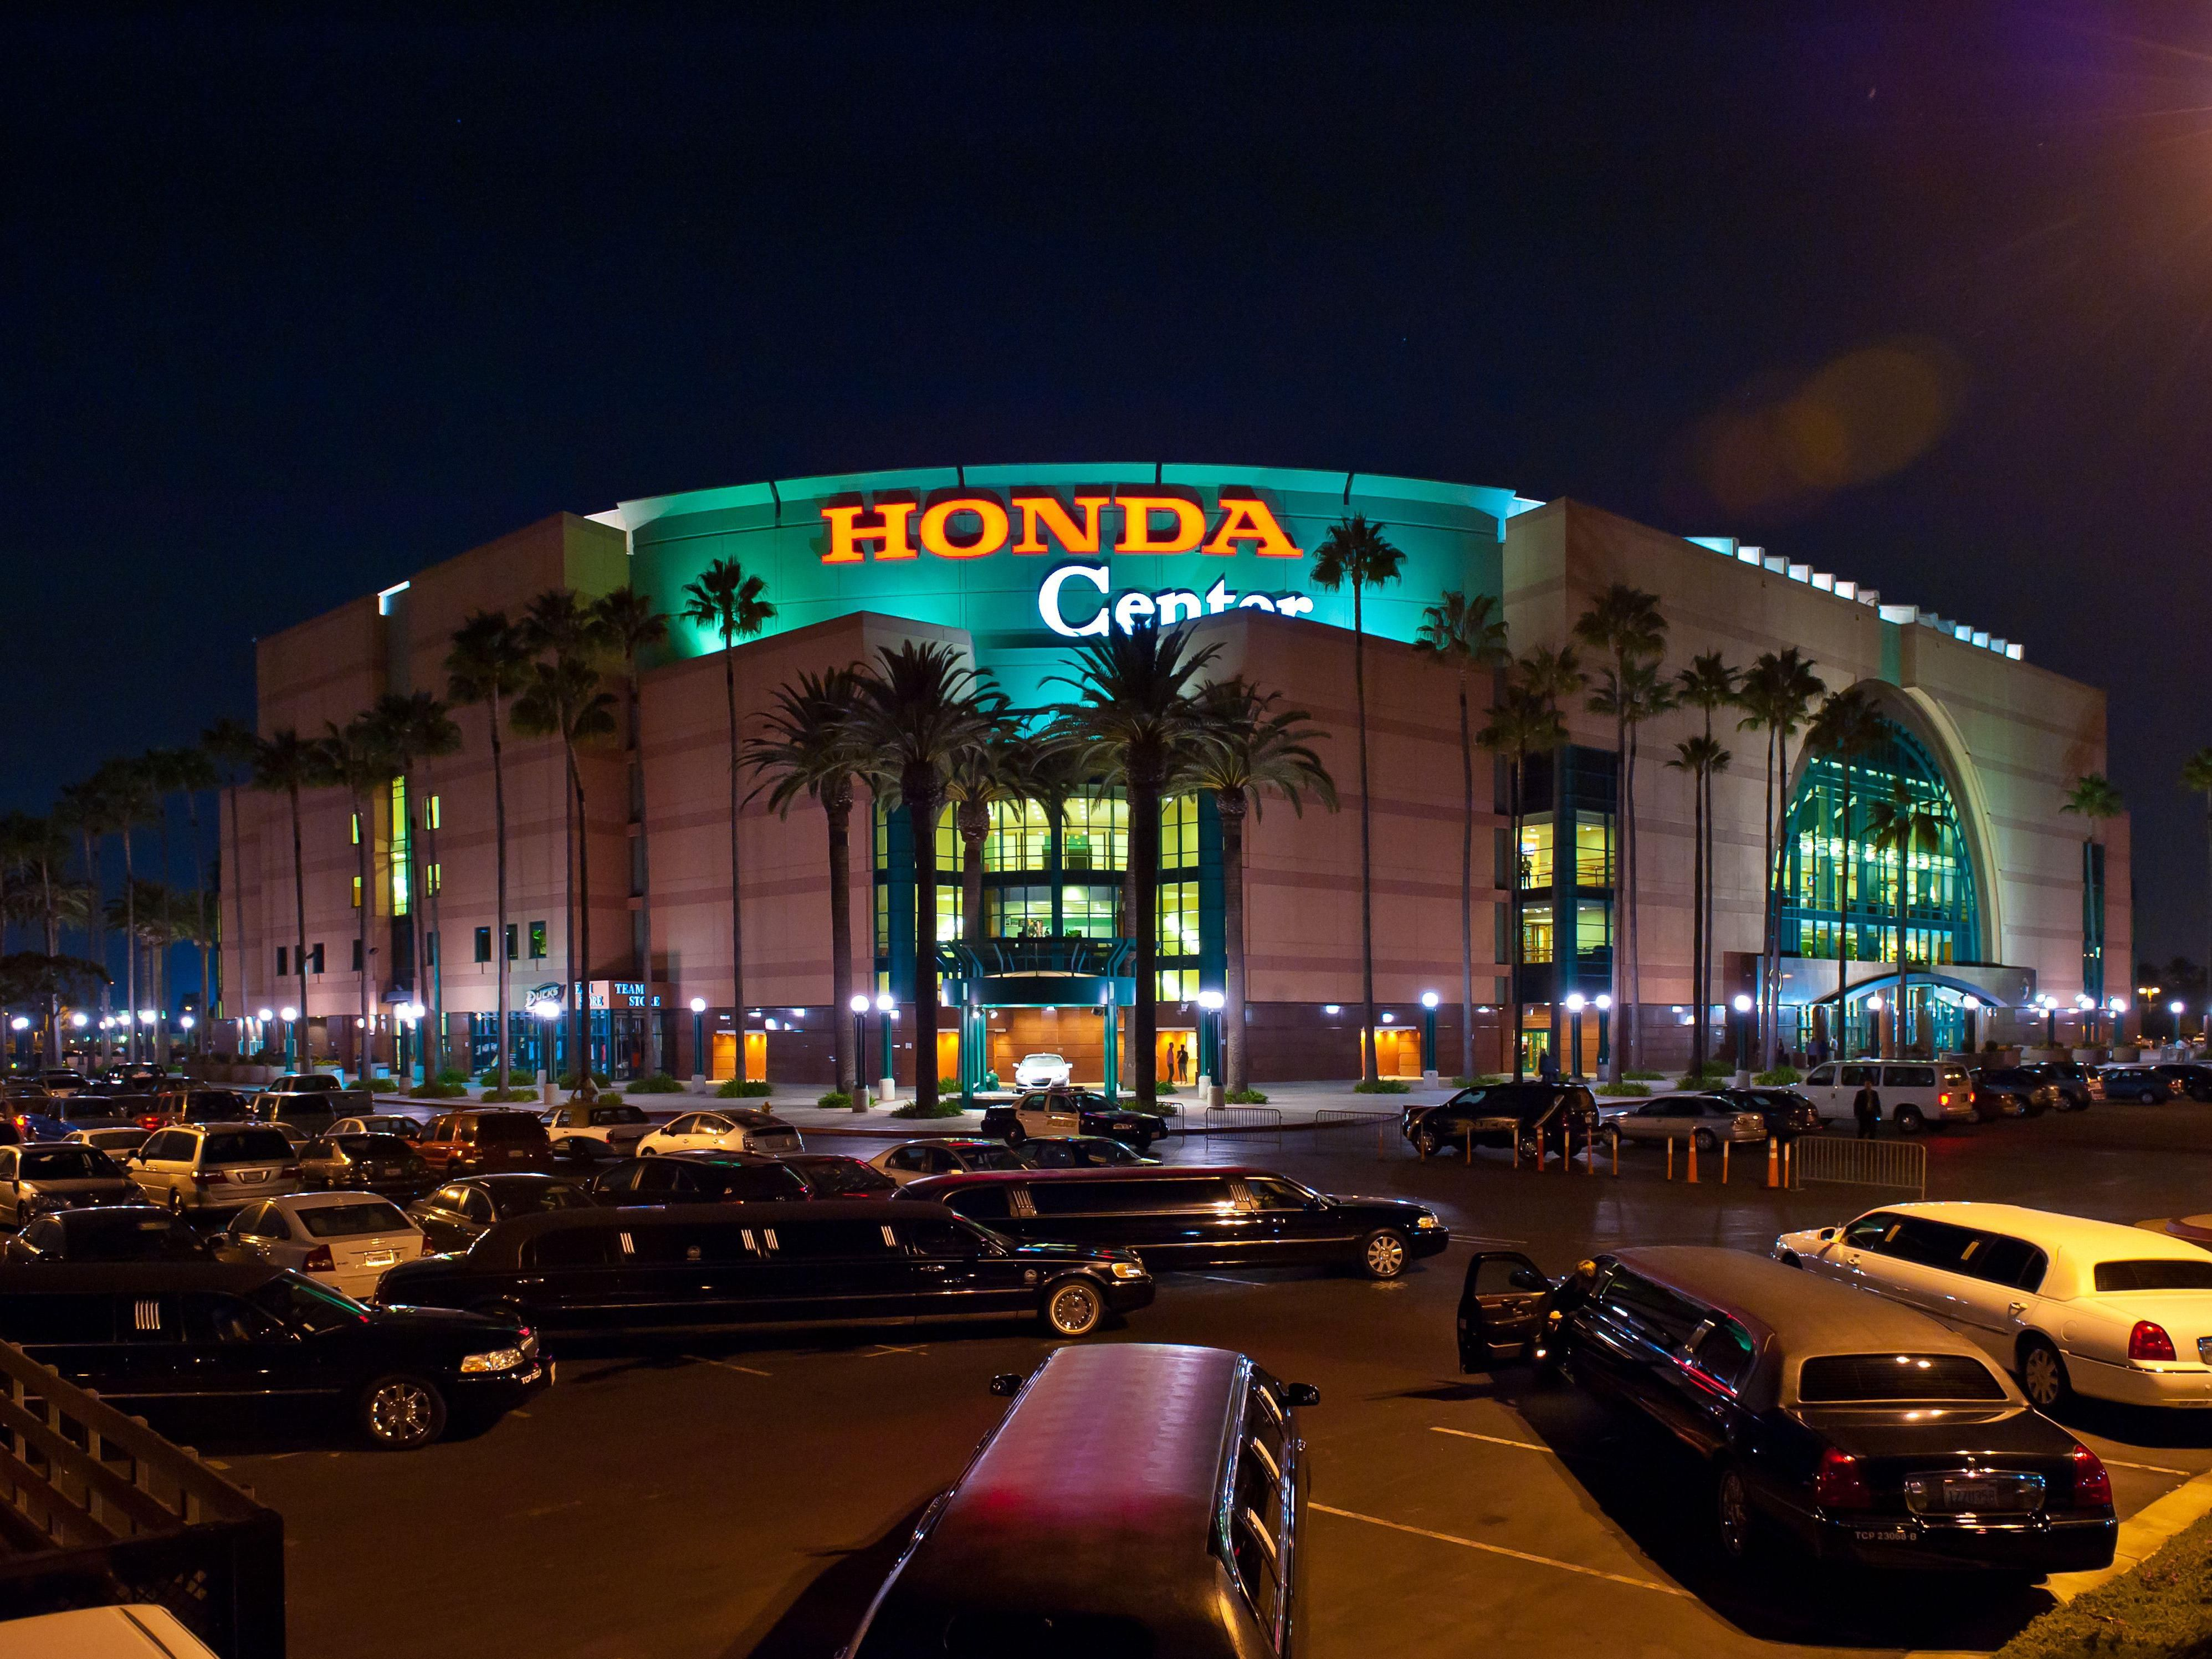 Honda Center home to great events, games and more